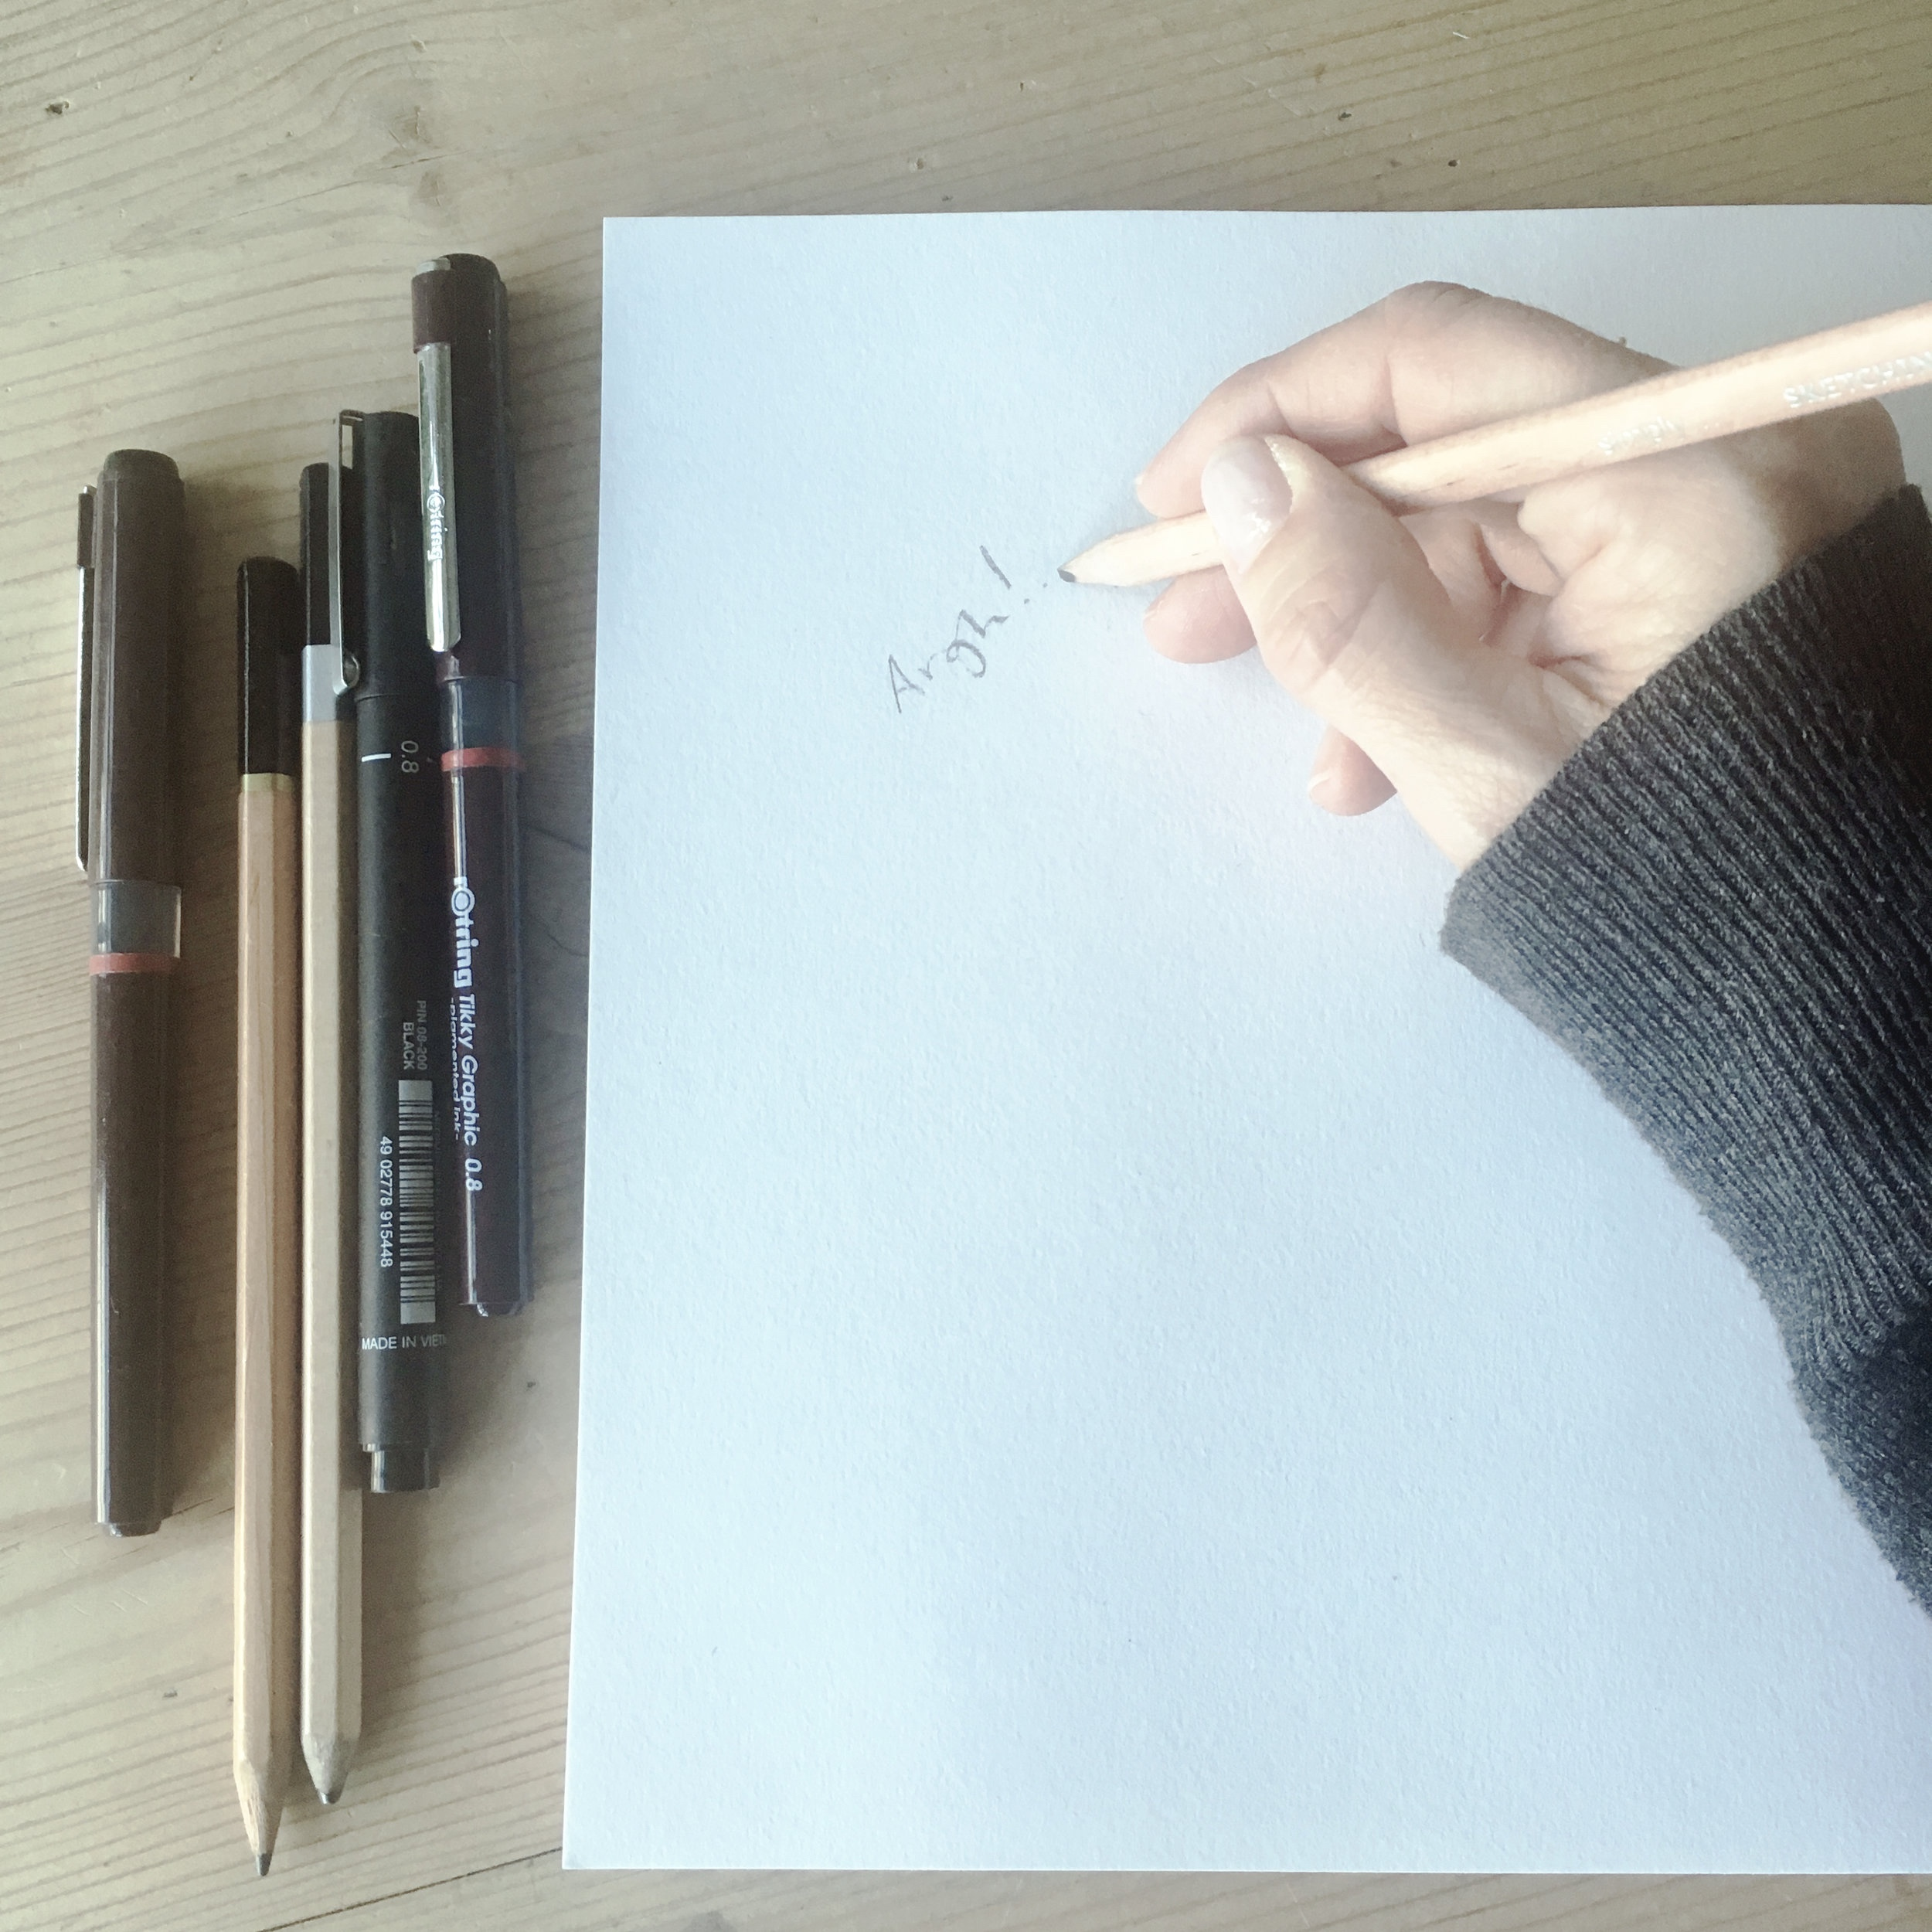 But what to draw? What if it's rubbish?